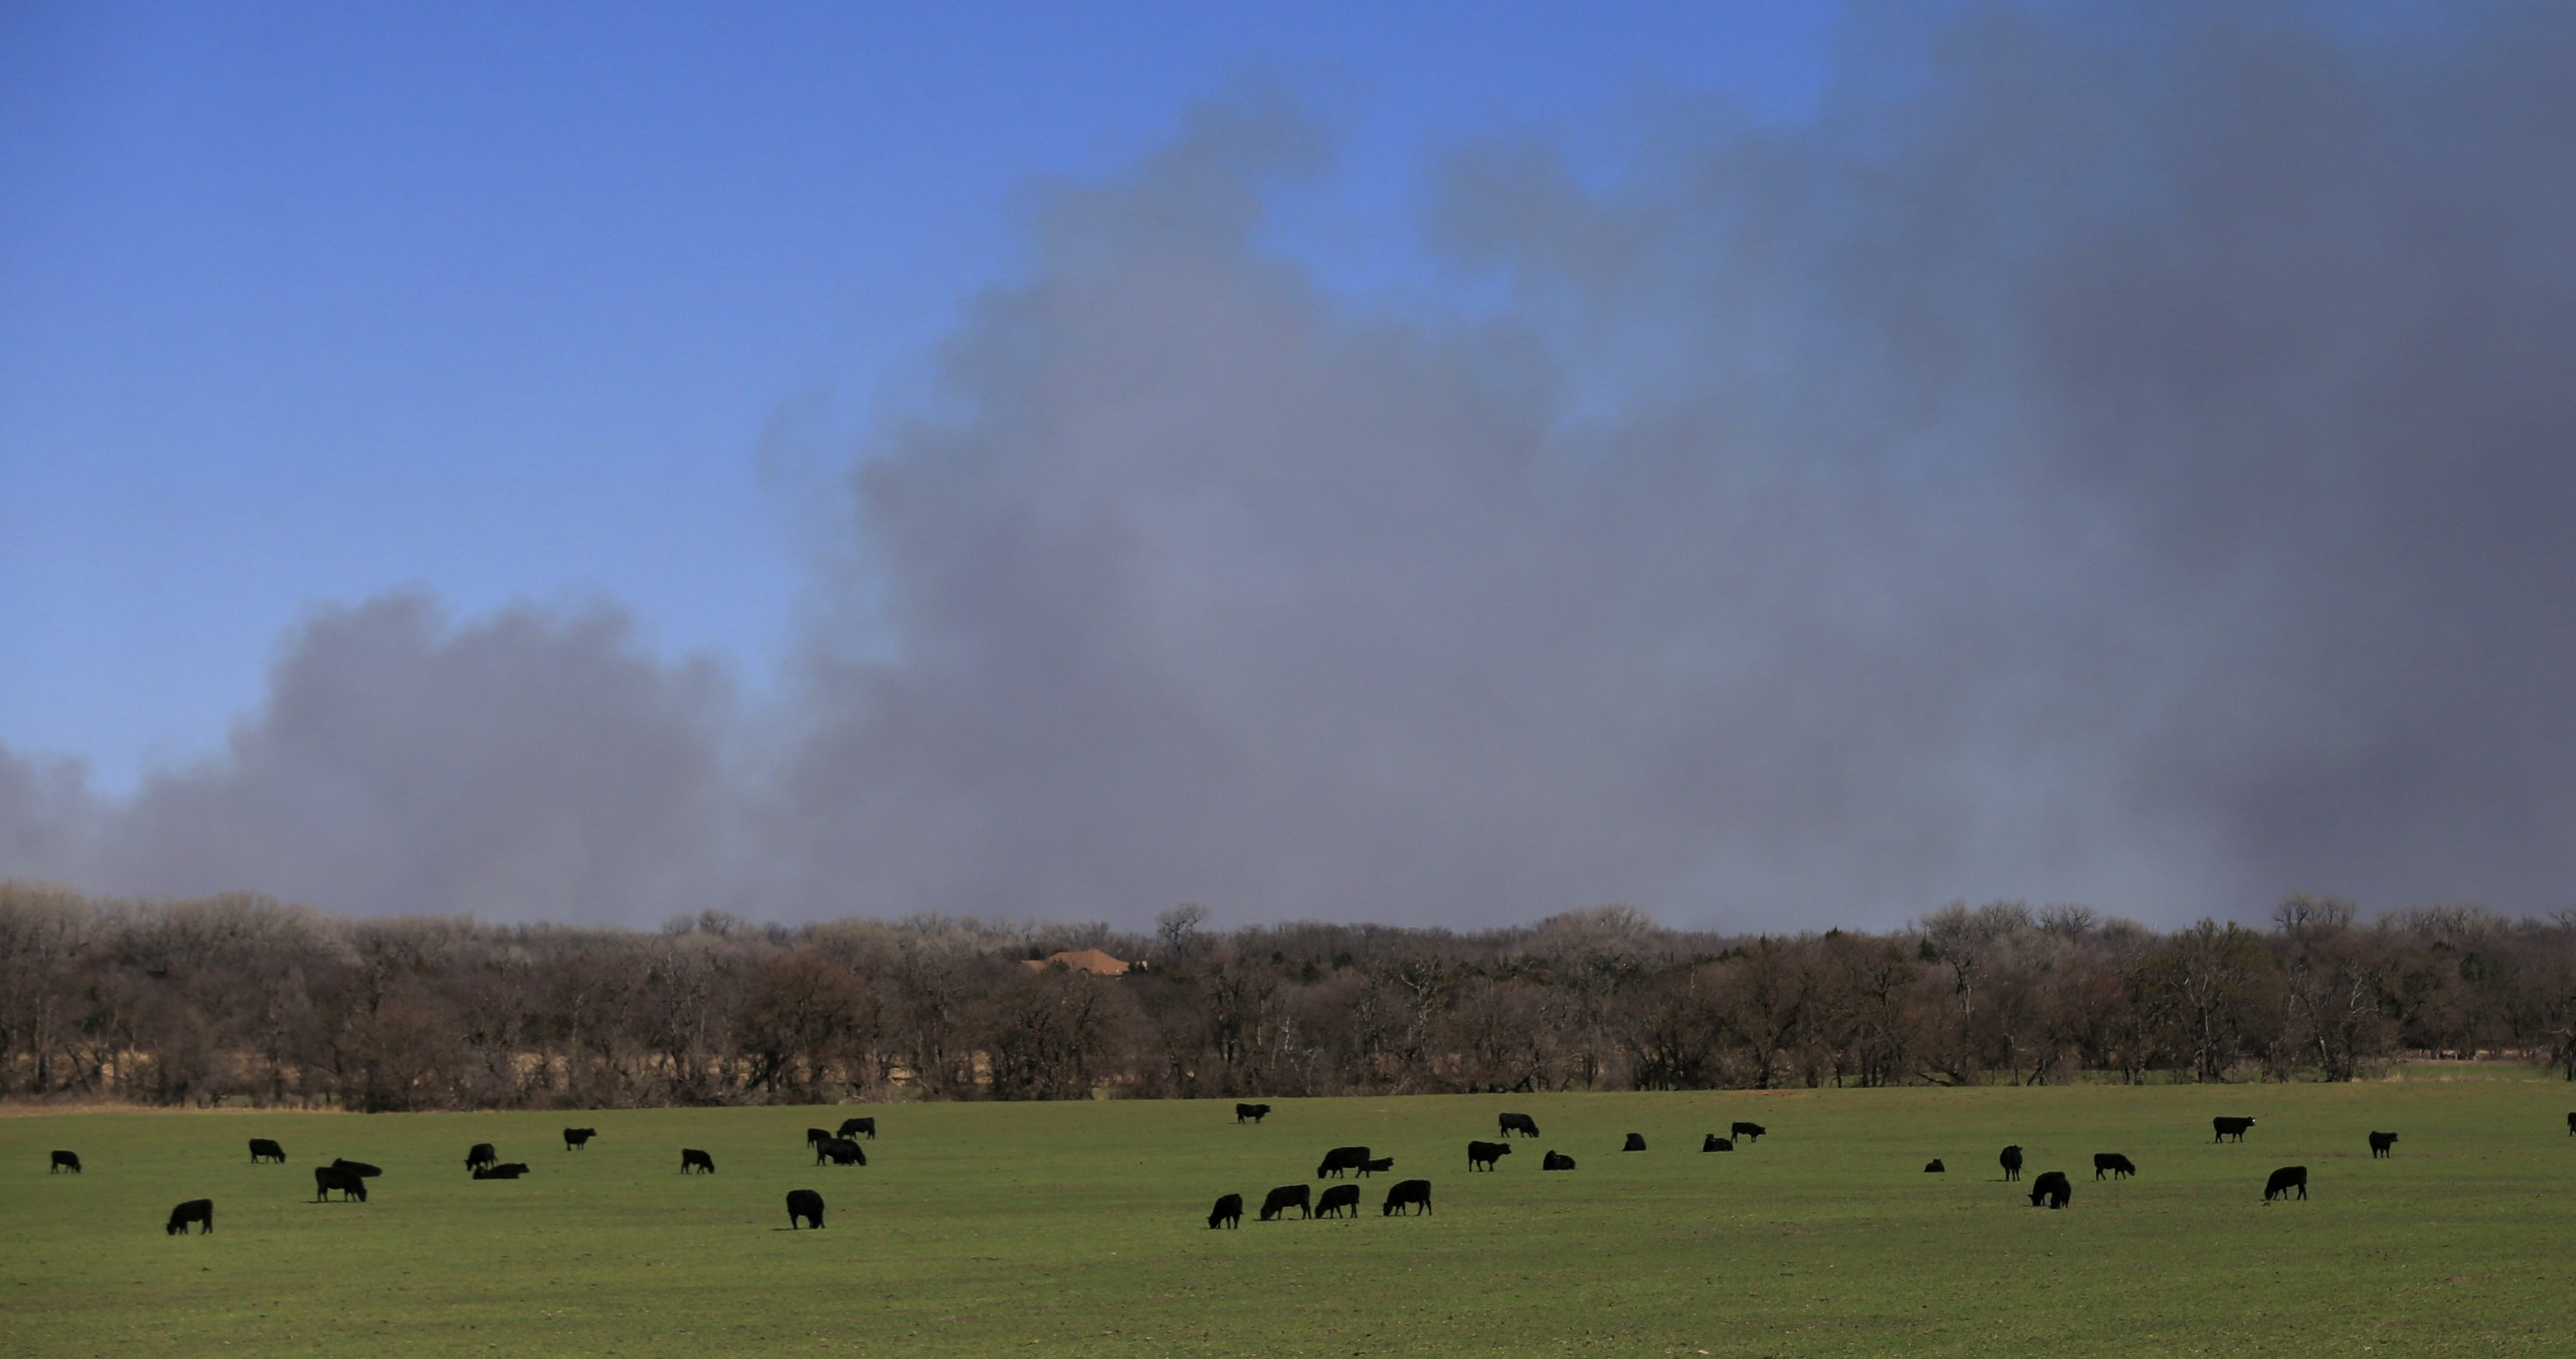 Ranchers assess damage after wildfires in 4 states